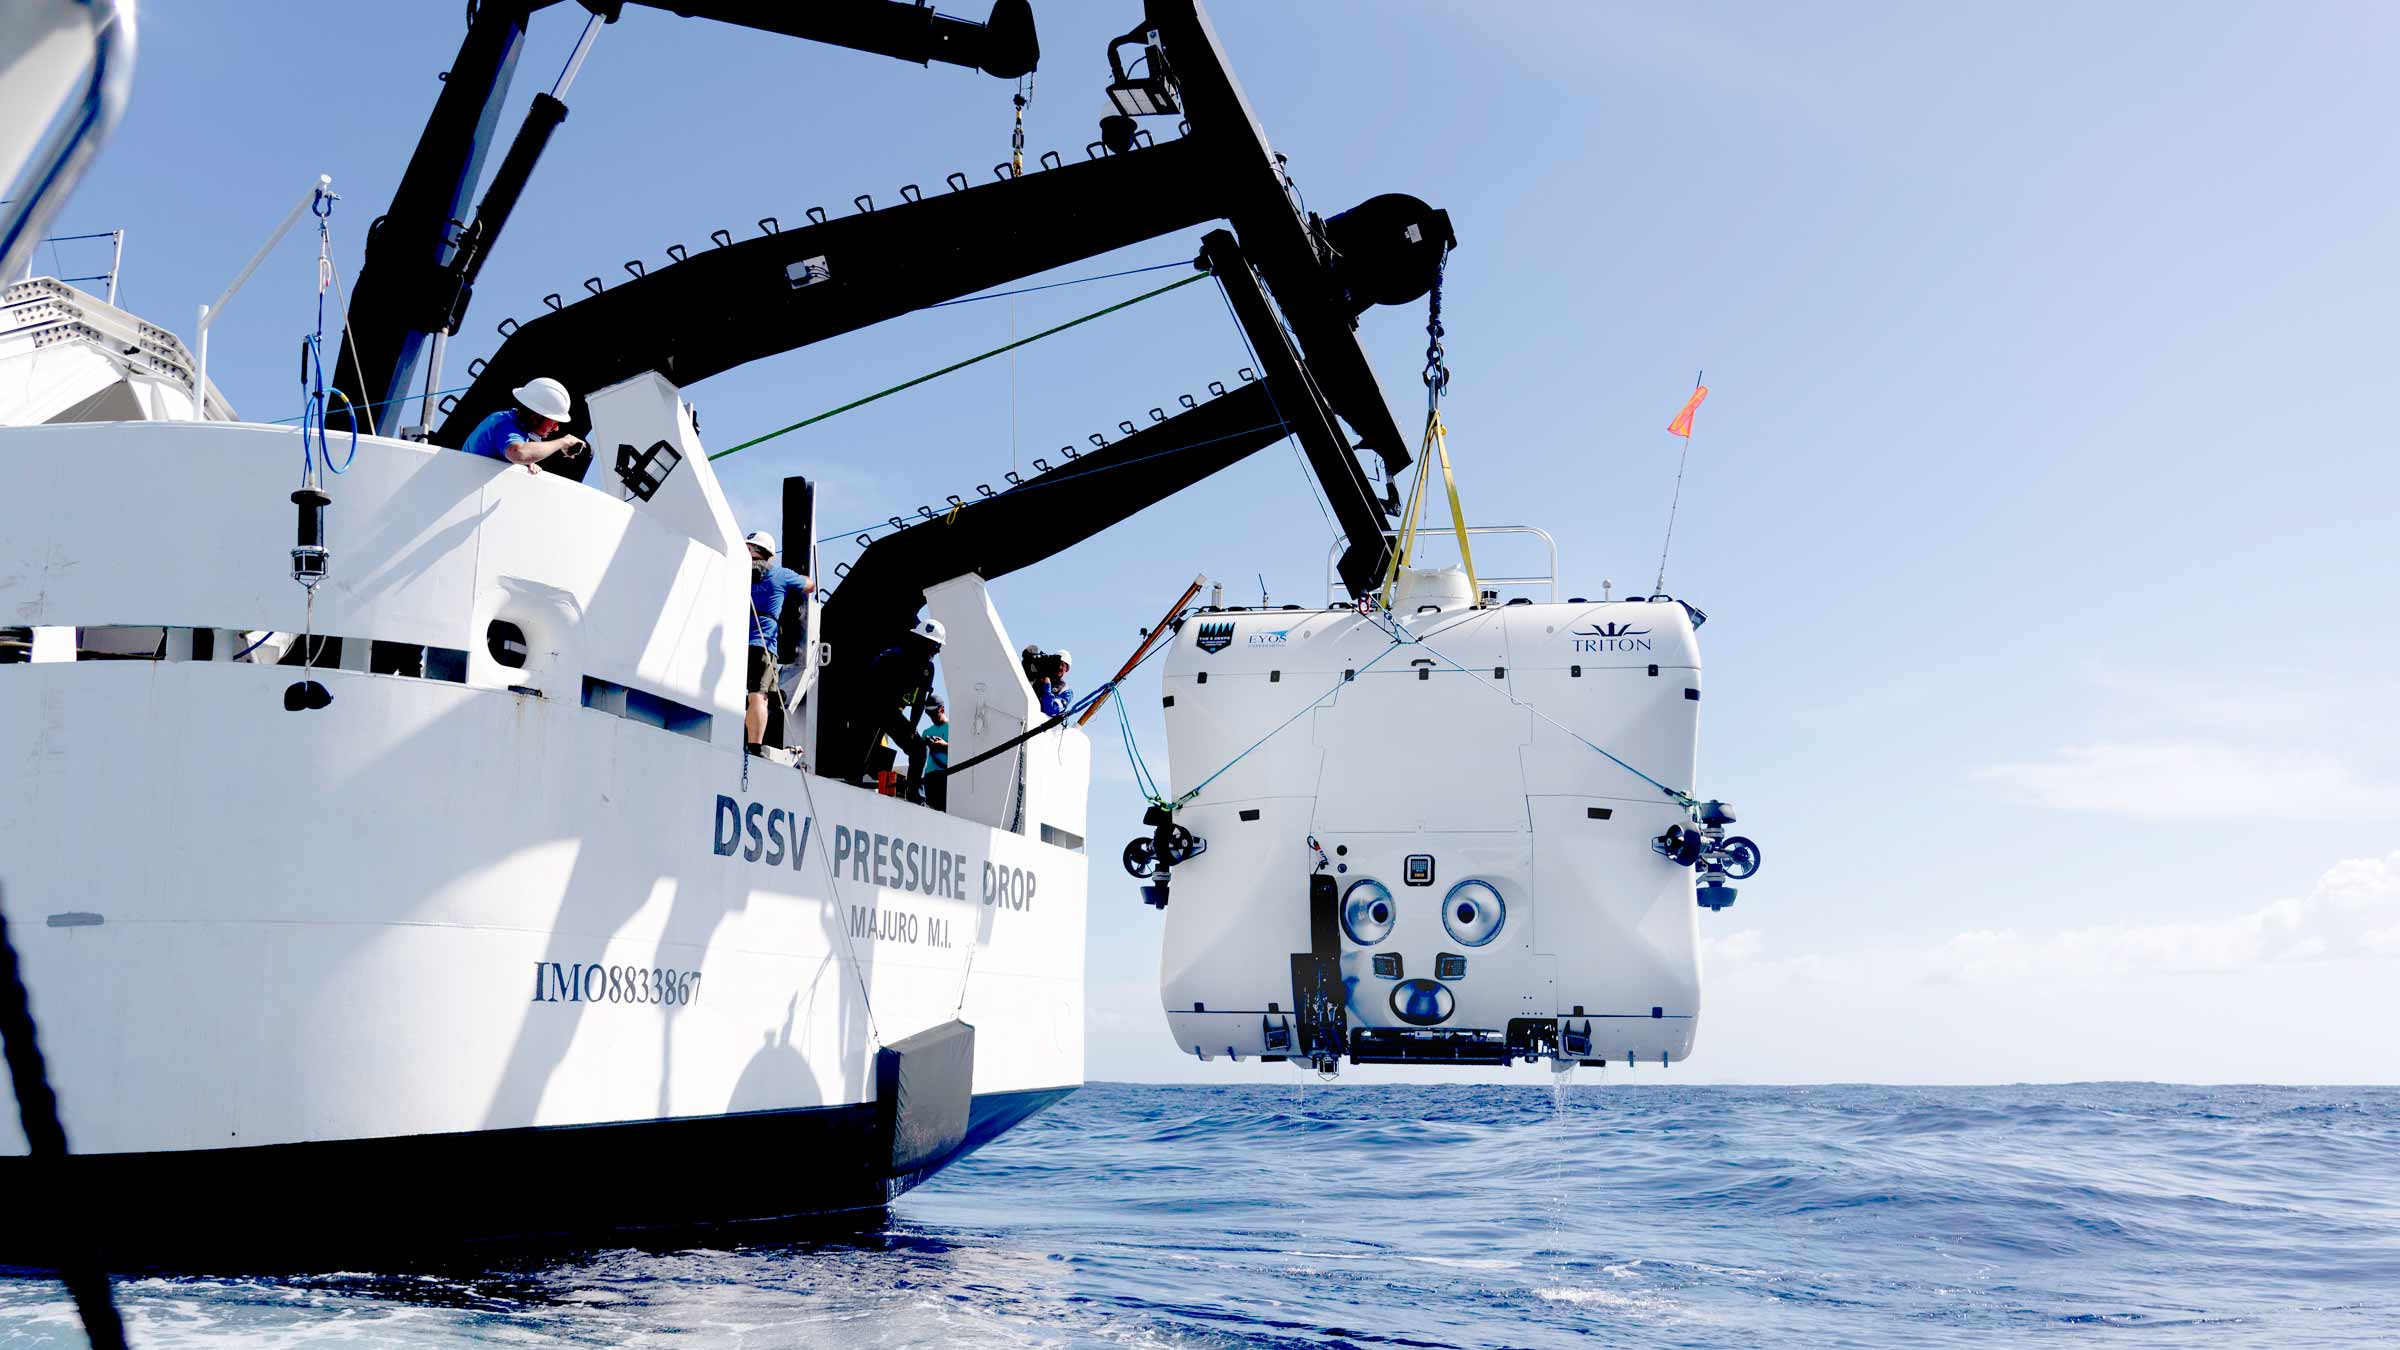 Triton 33000/2 launching from vessel. Part of the Triton Hadal Exploration System